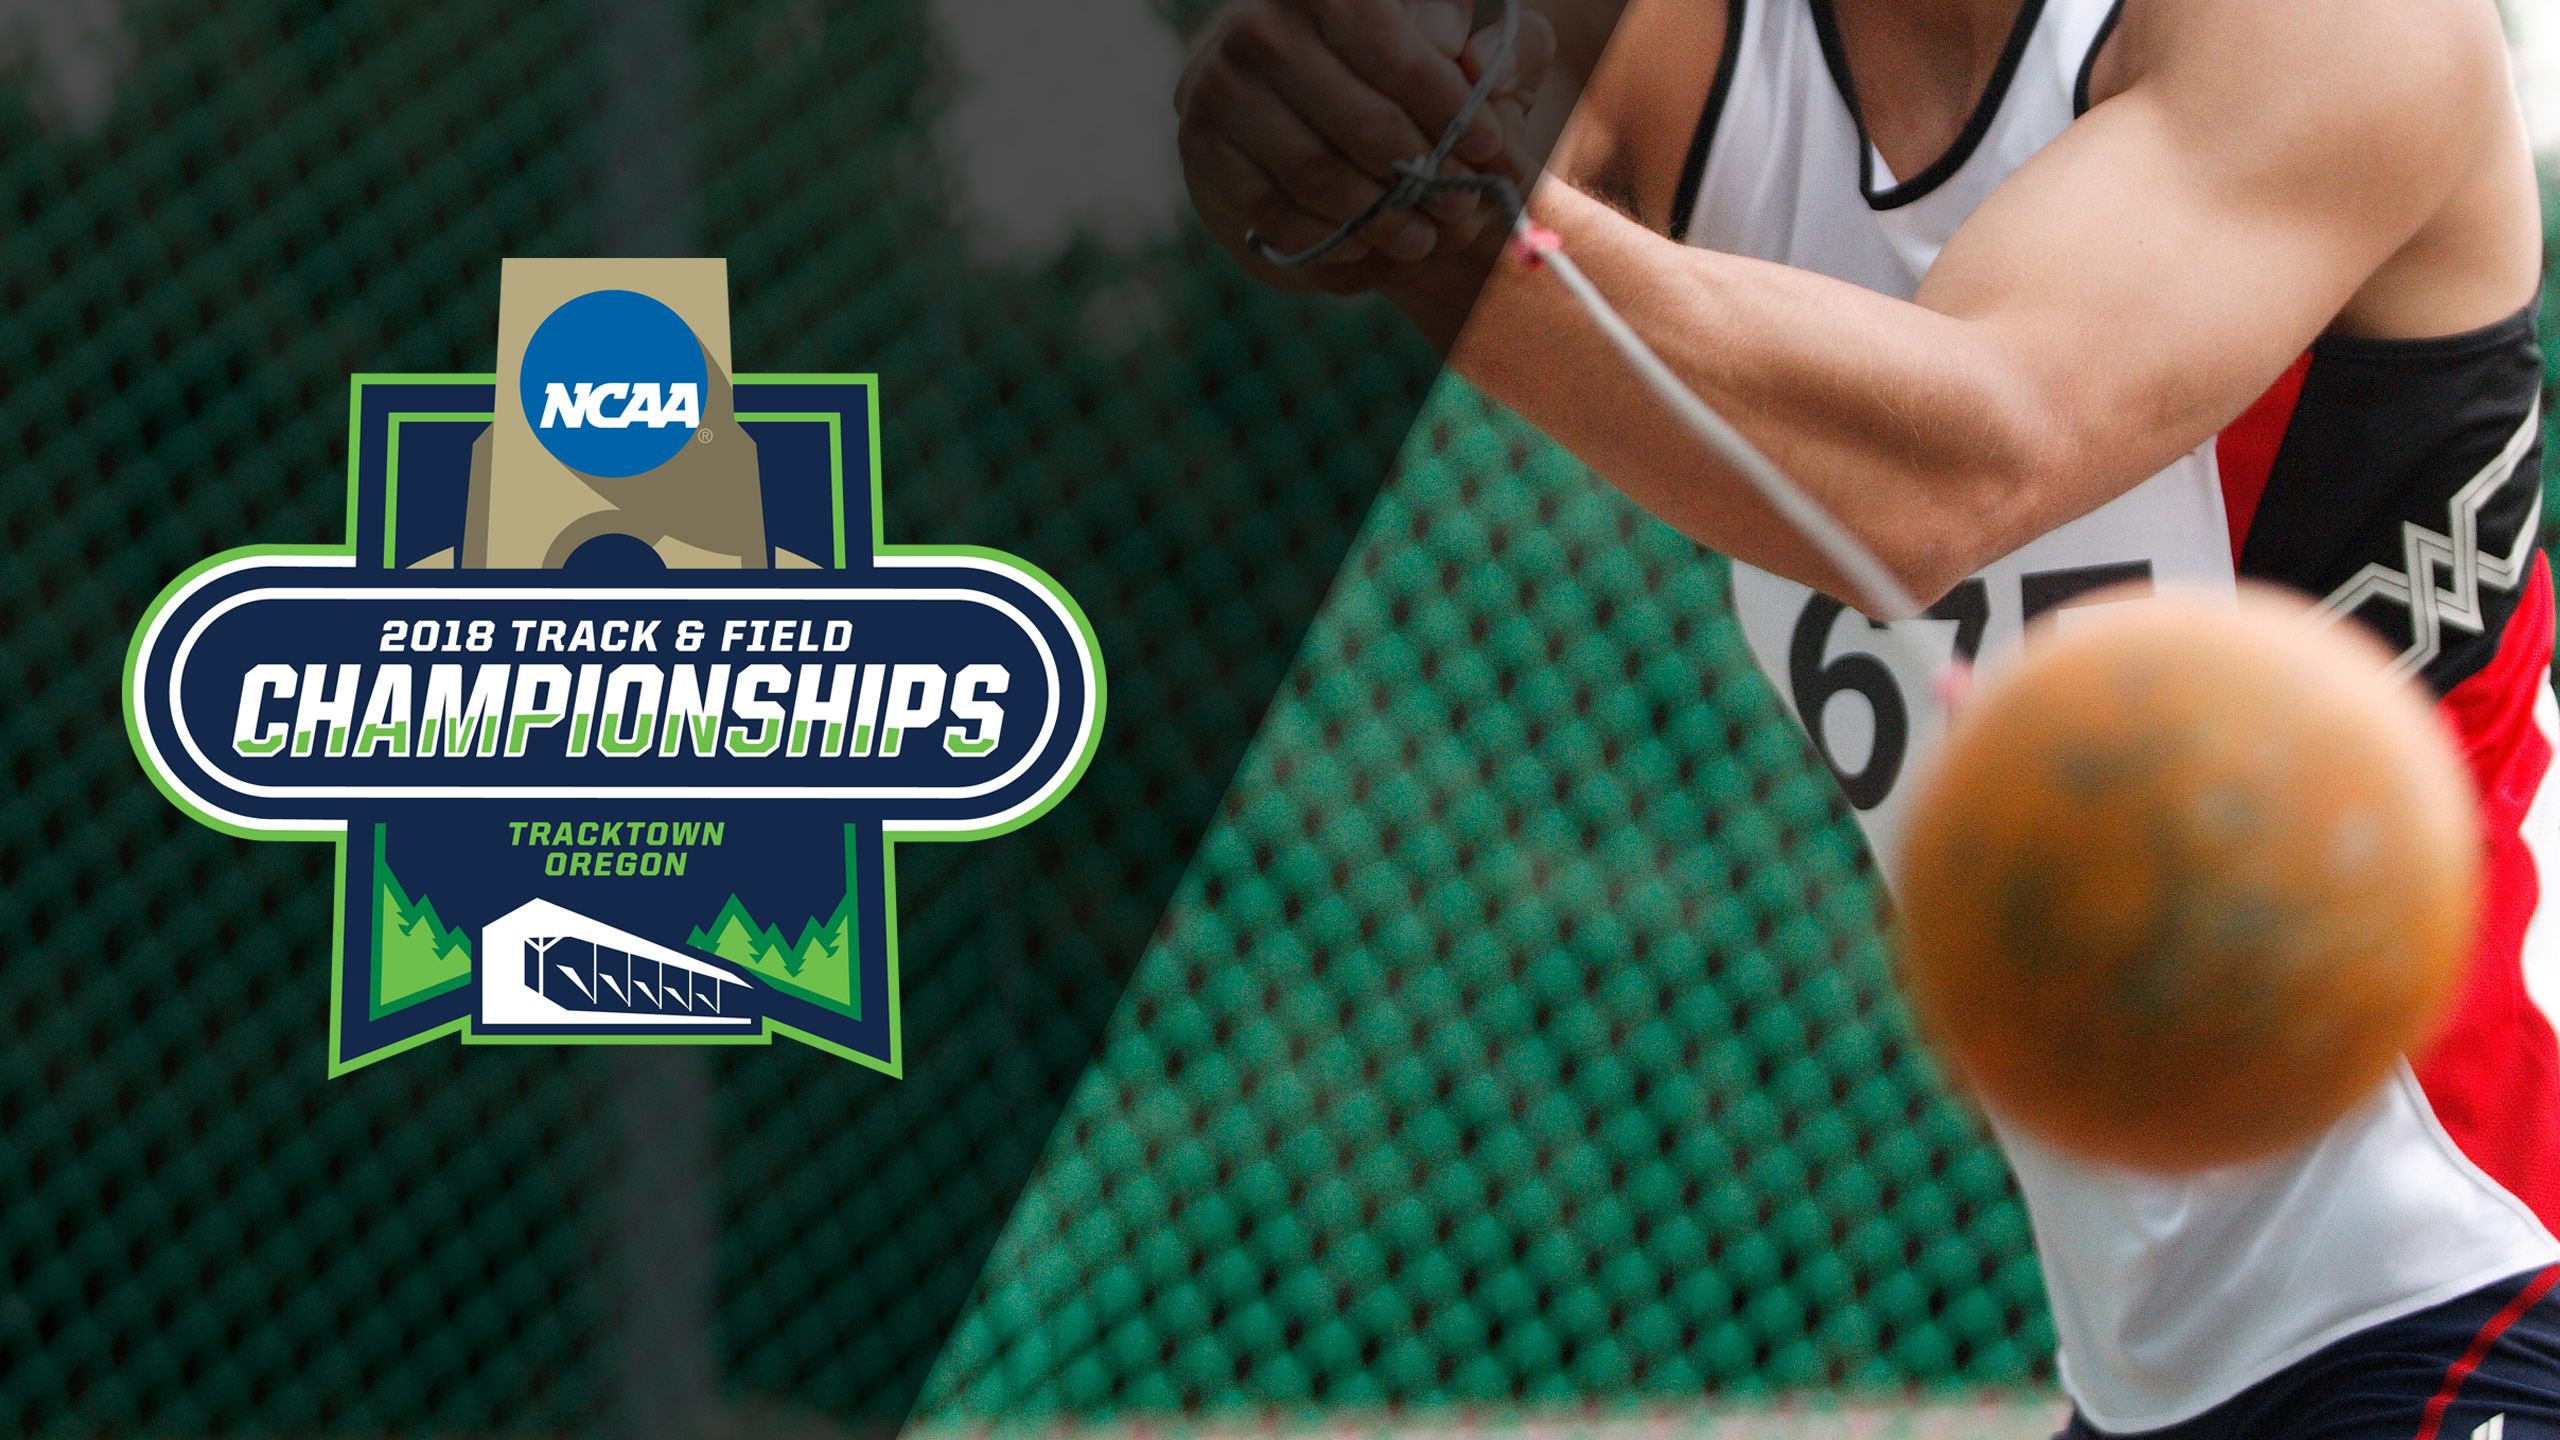 NCAA Track & Field Outdoor Championships - Men's Hammer Throw Trials & Final (Feed #1)